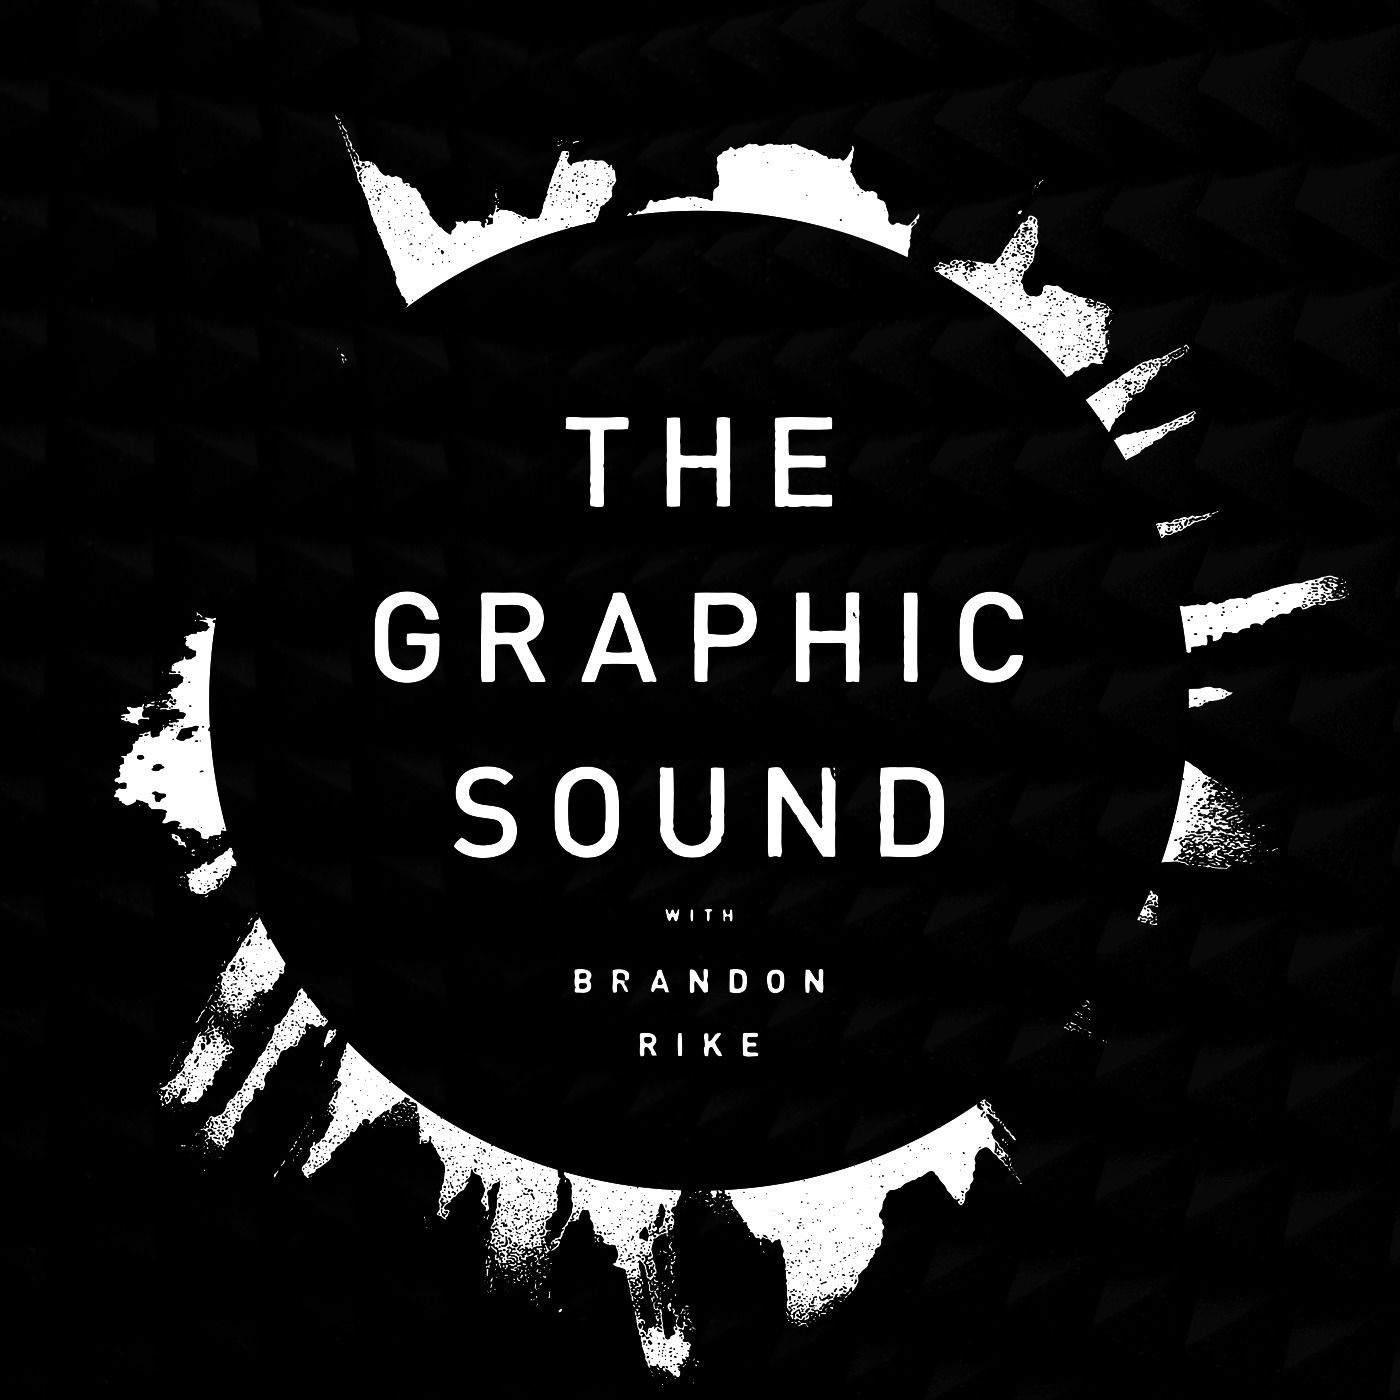 The Graphic Sound